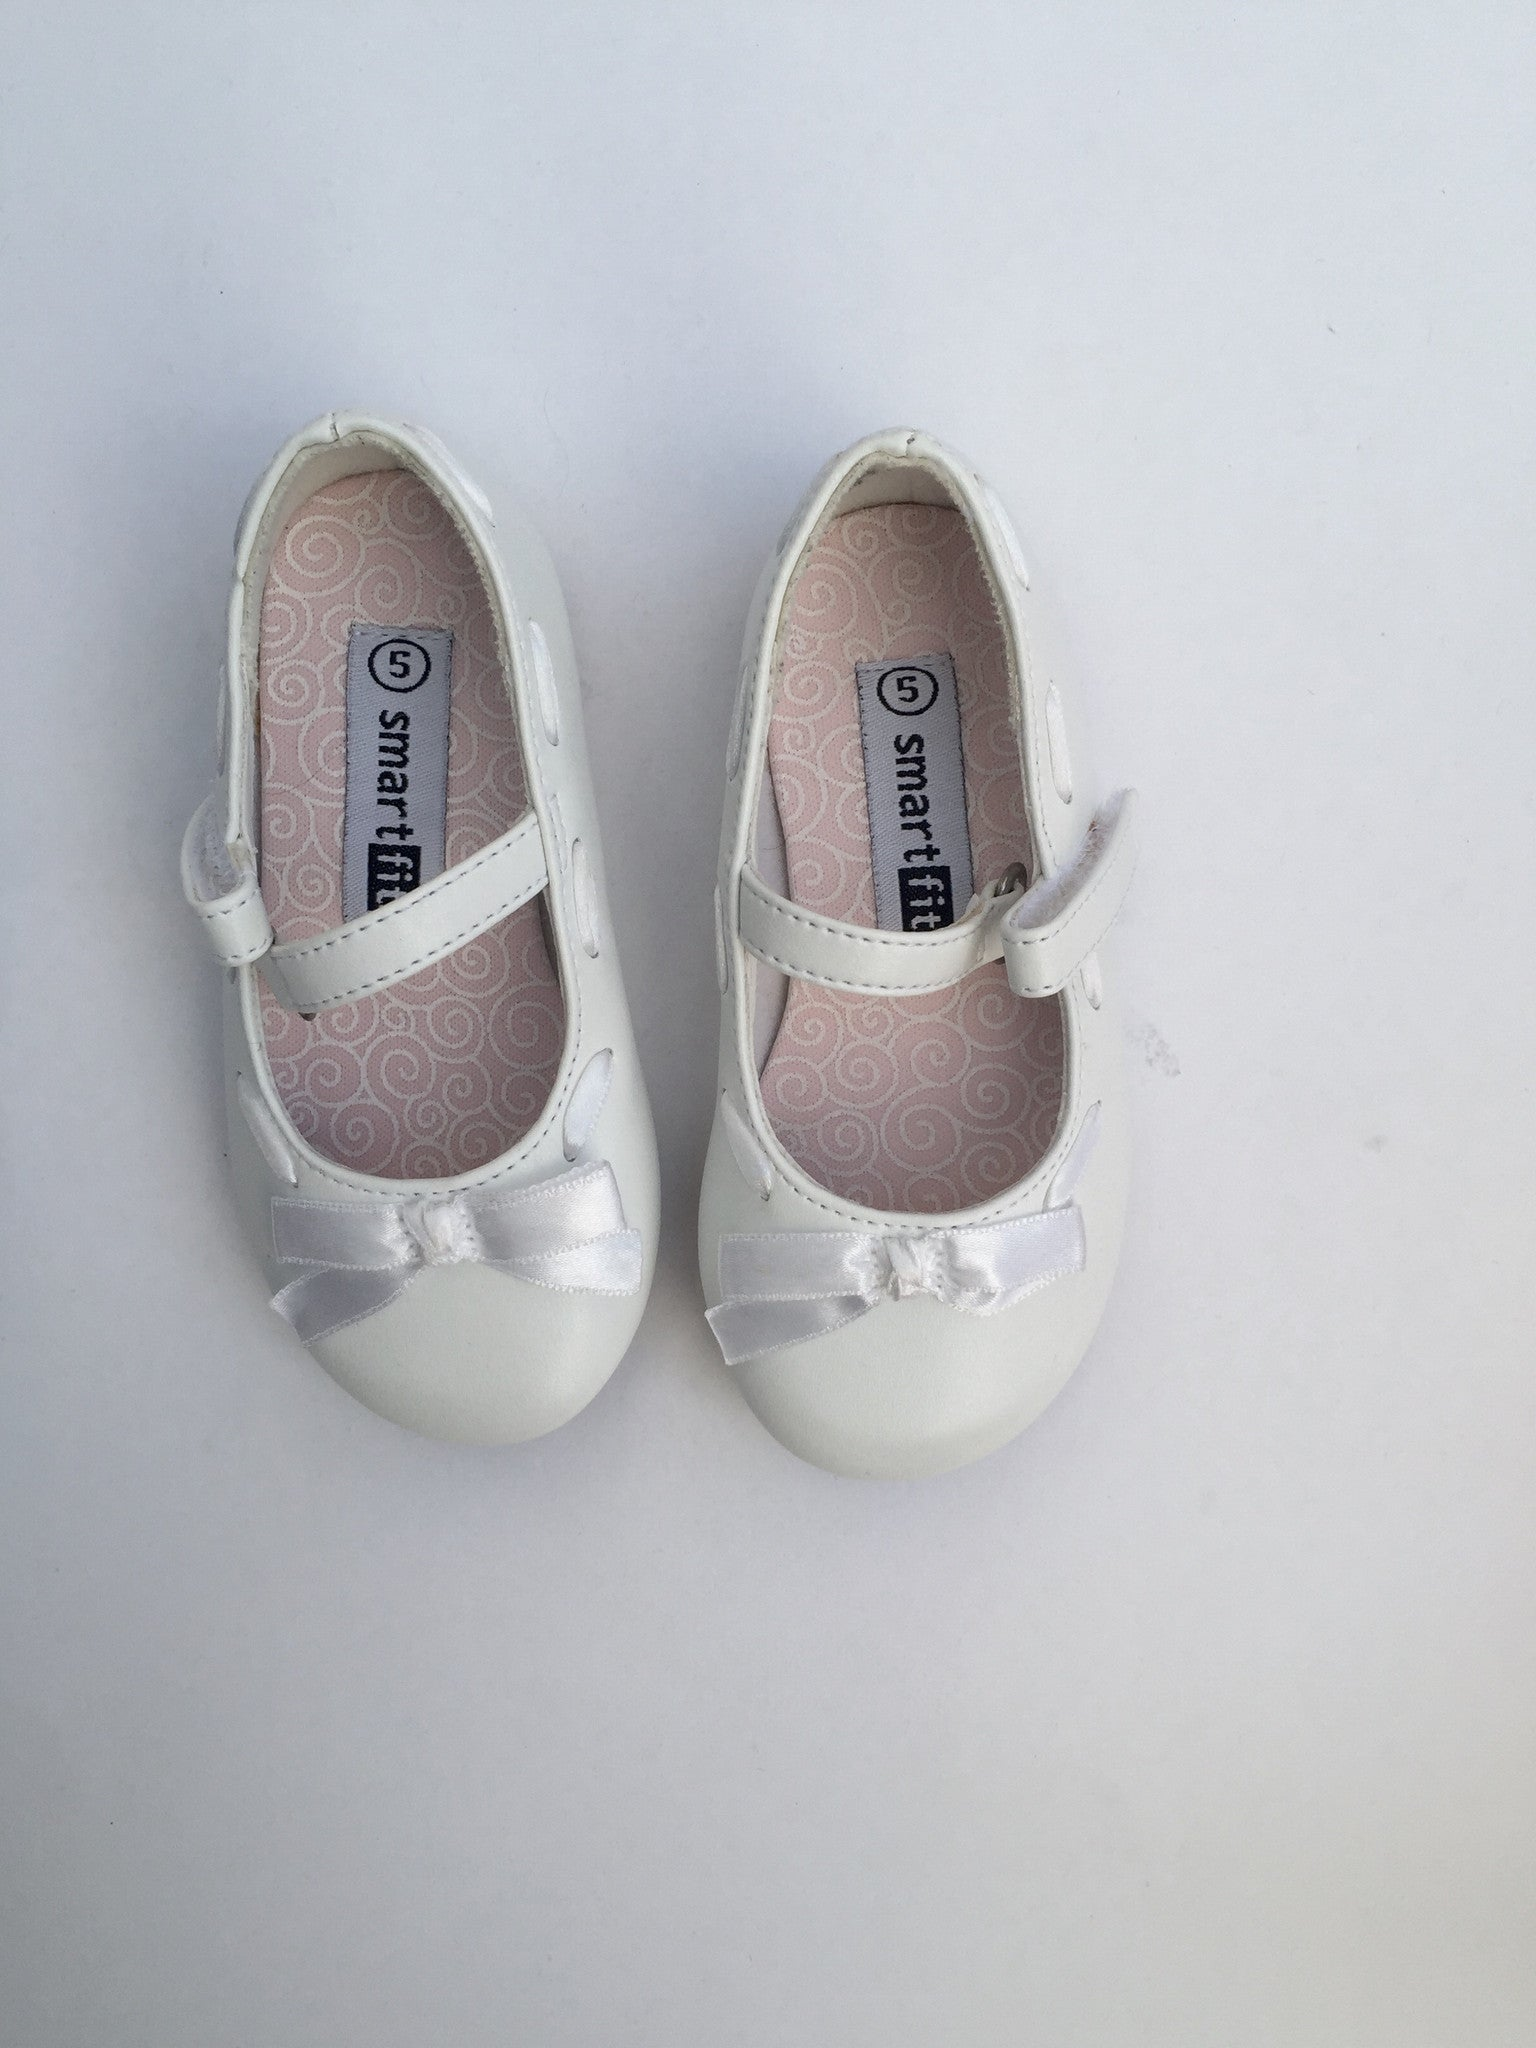 Smartfit White Shoes | Girls | Size 5